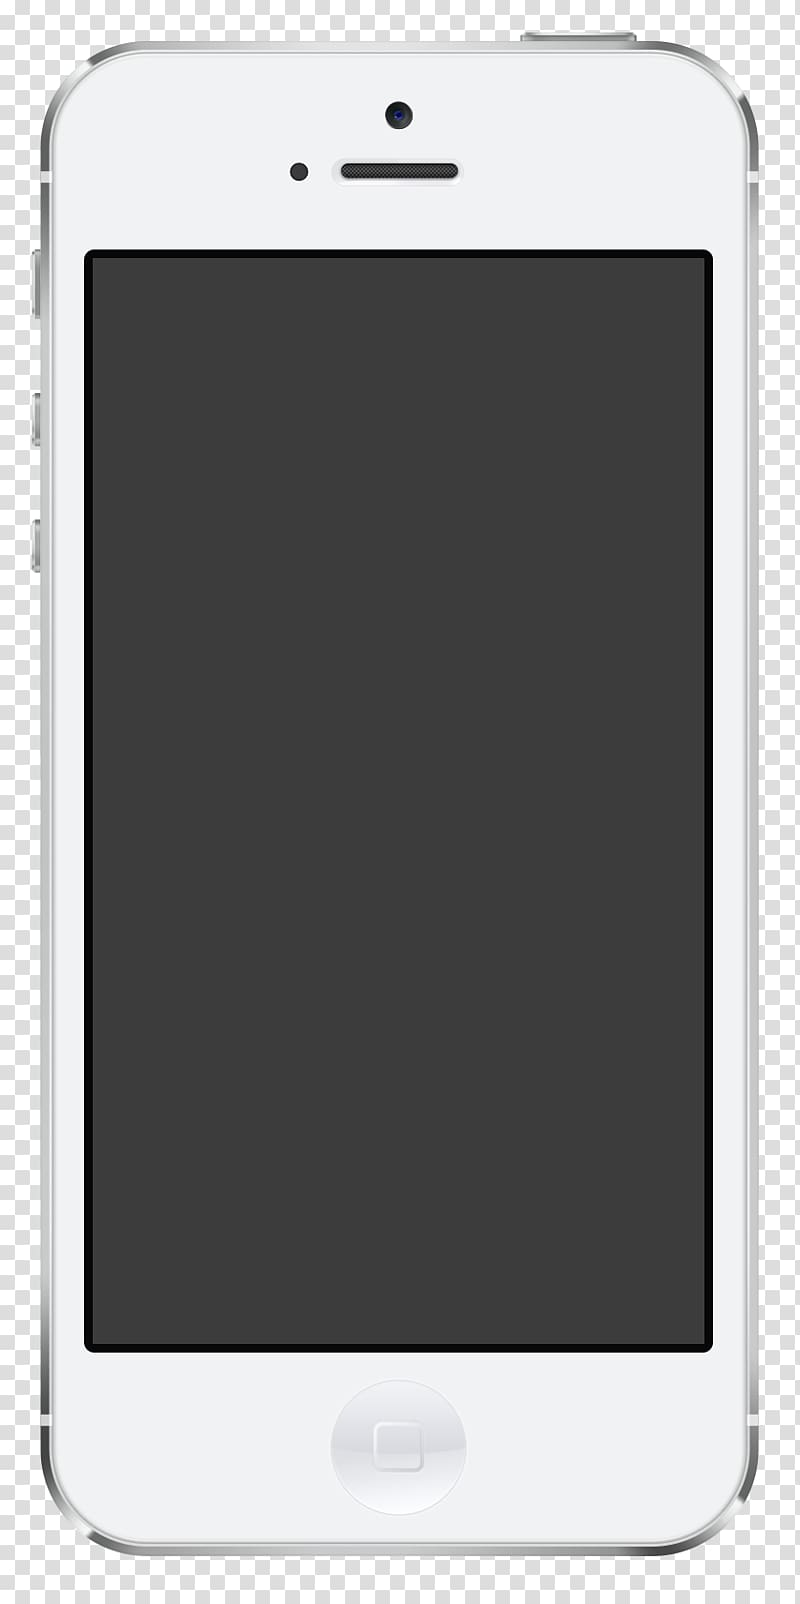 Iphone 6 clipart image graphic black and white stock IPhone 4S iPhone 6 iPhone X iPhone 8 Face ID, Apple iphone ... graphic black and white stock